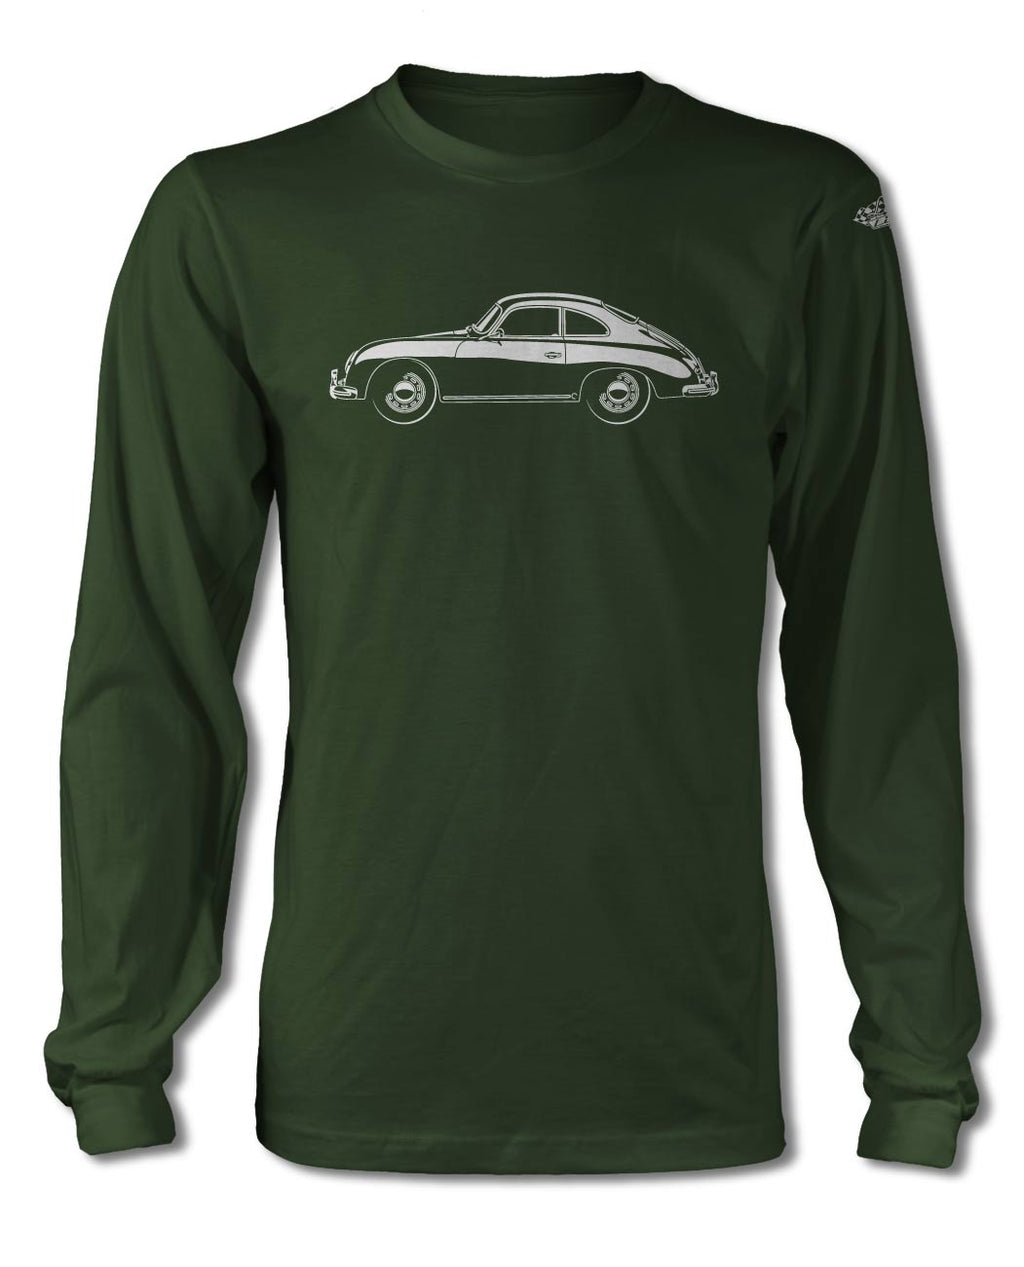 Porsche 356A Coupe T-Shirt - Long Sleeves - Side View